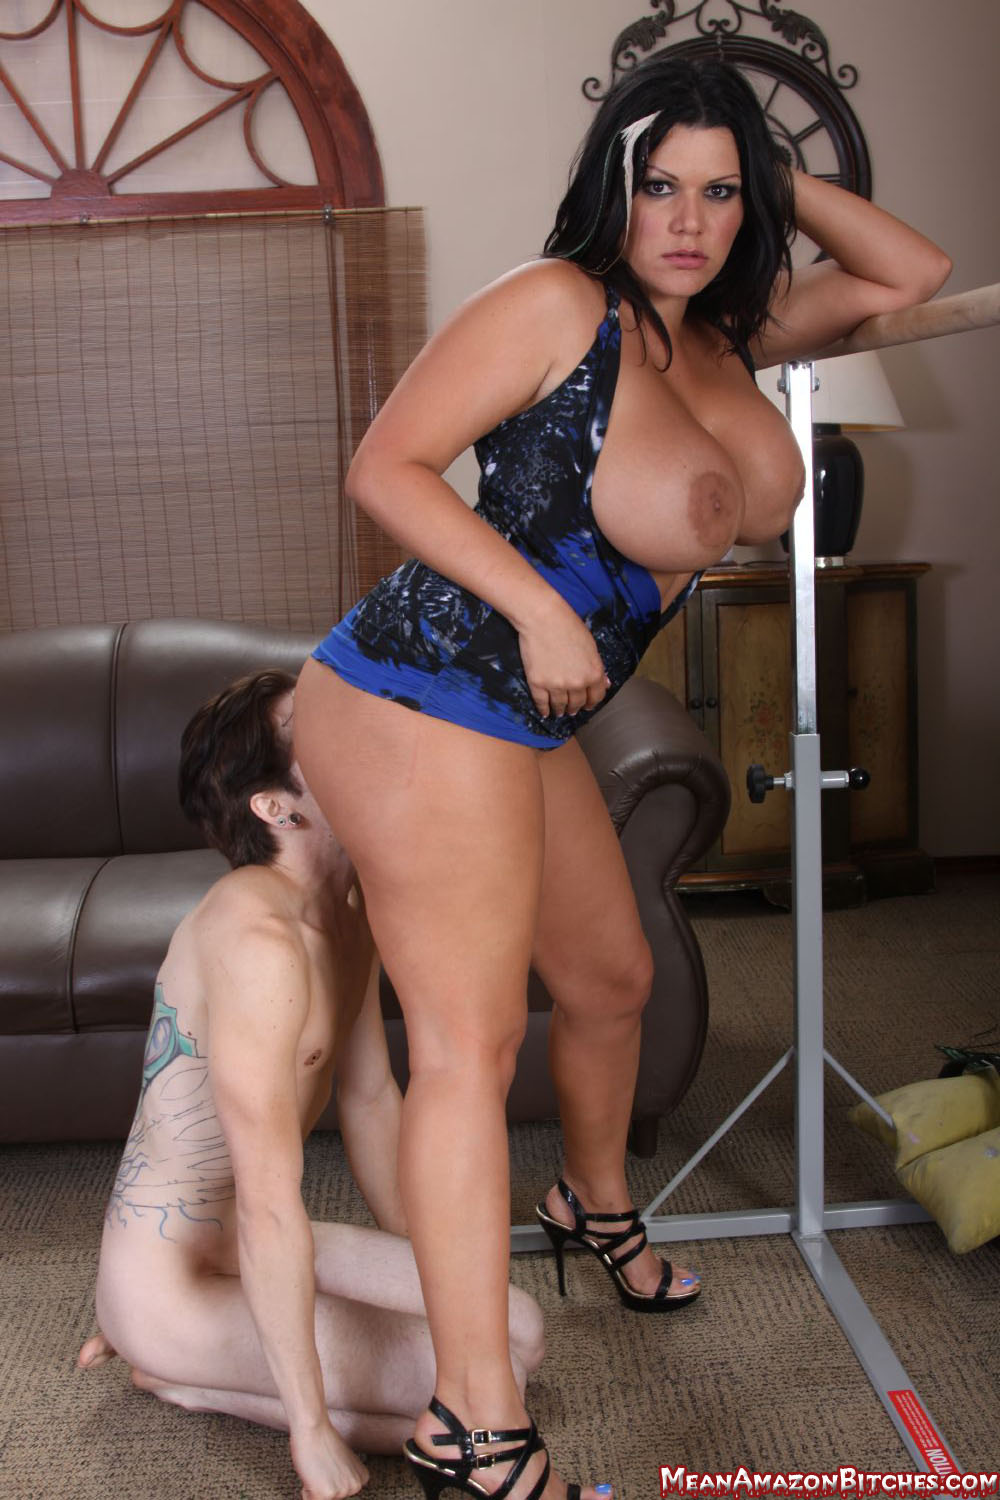 Mean Amazon Bitches.com Where Voluptuous round women ...: http://www.meanbitchbucks.com/mgalleries/2011/mamazon36/